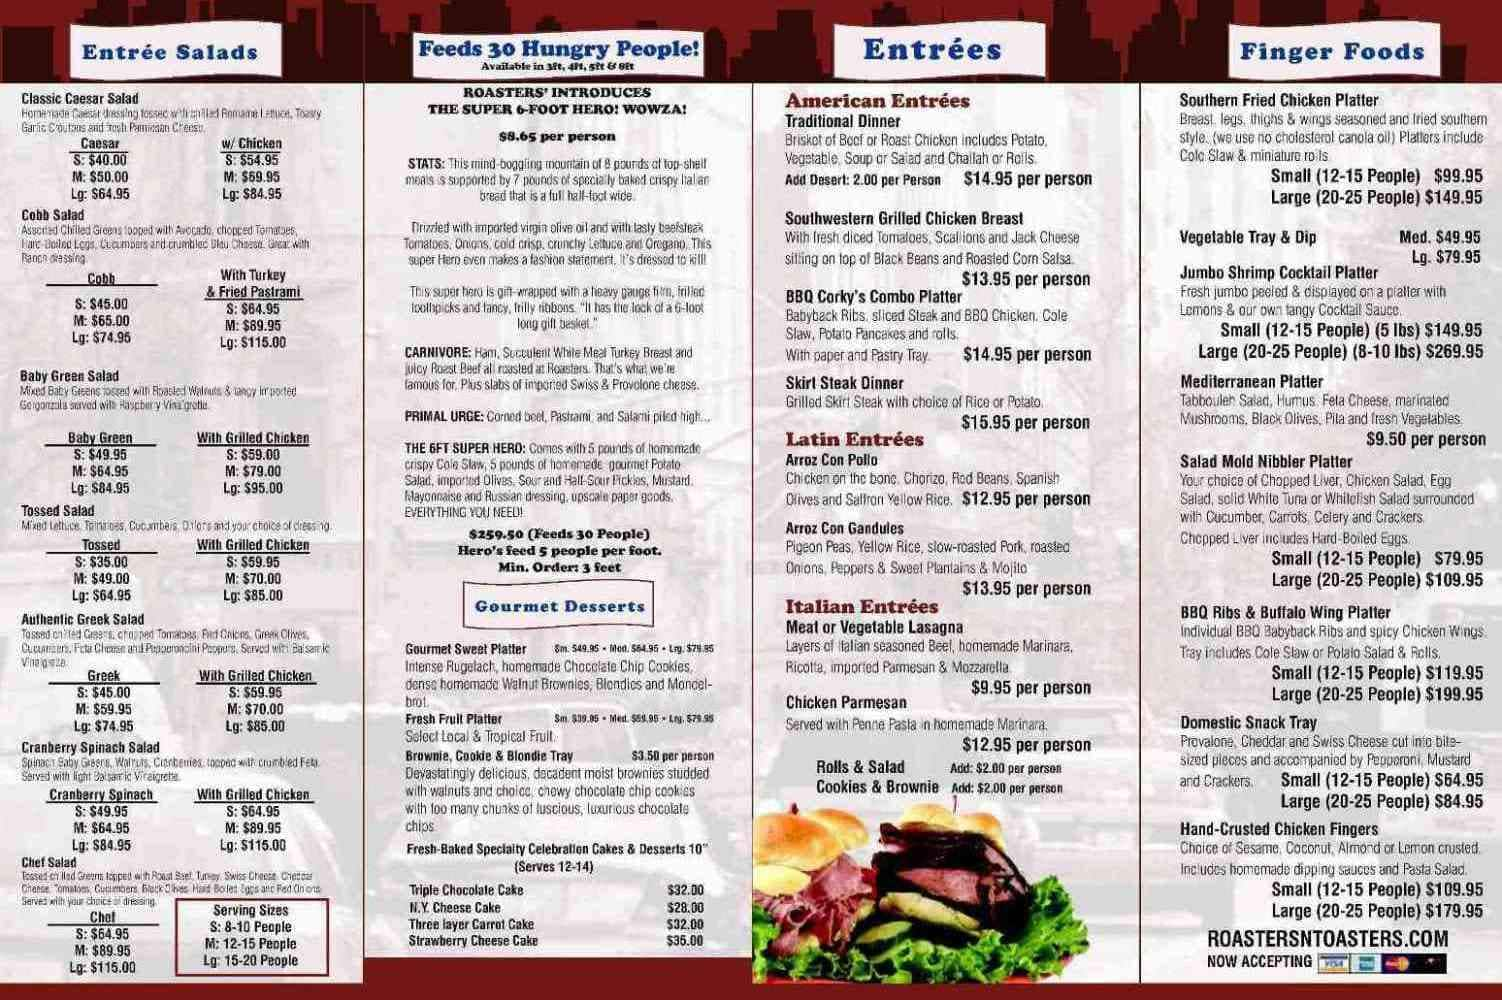 Menu at Roasters \'N Toasters restaurant, Miami, S Dixie Hwy